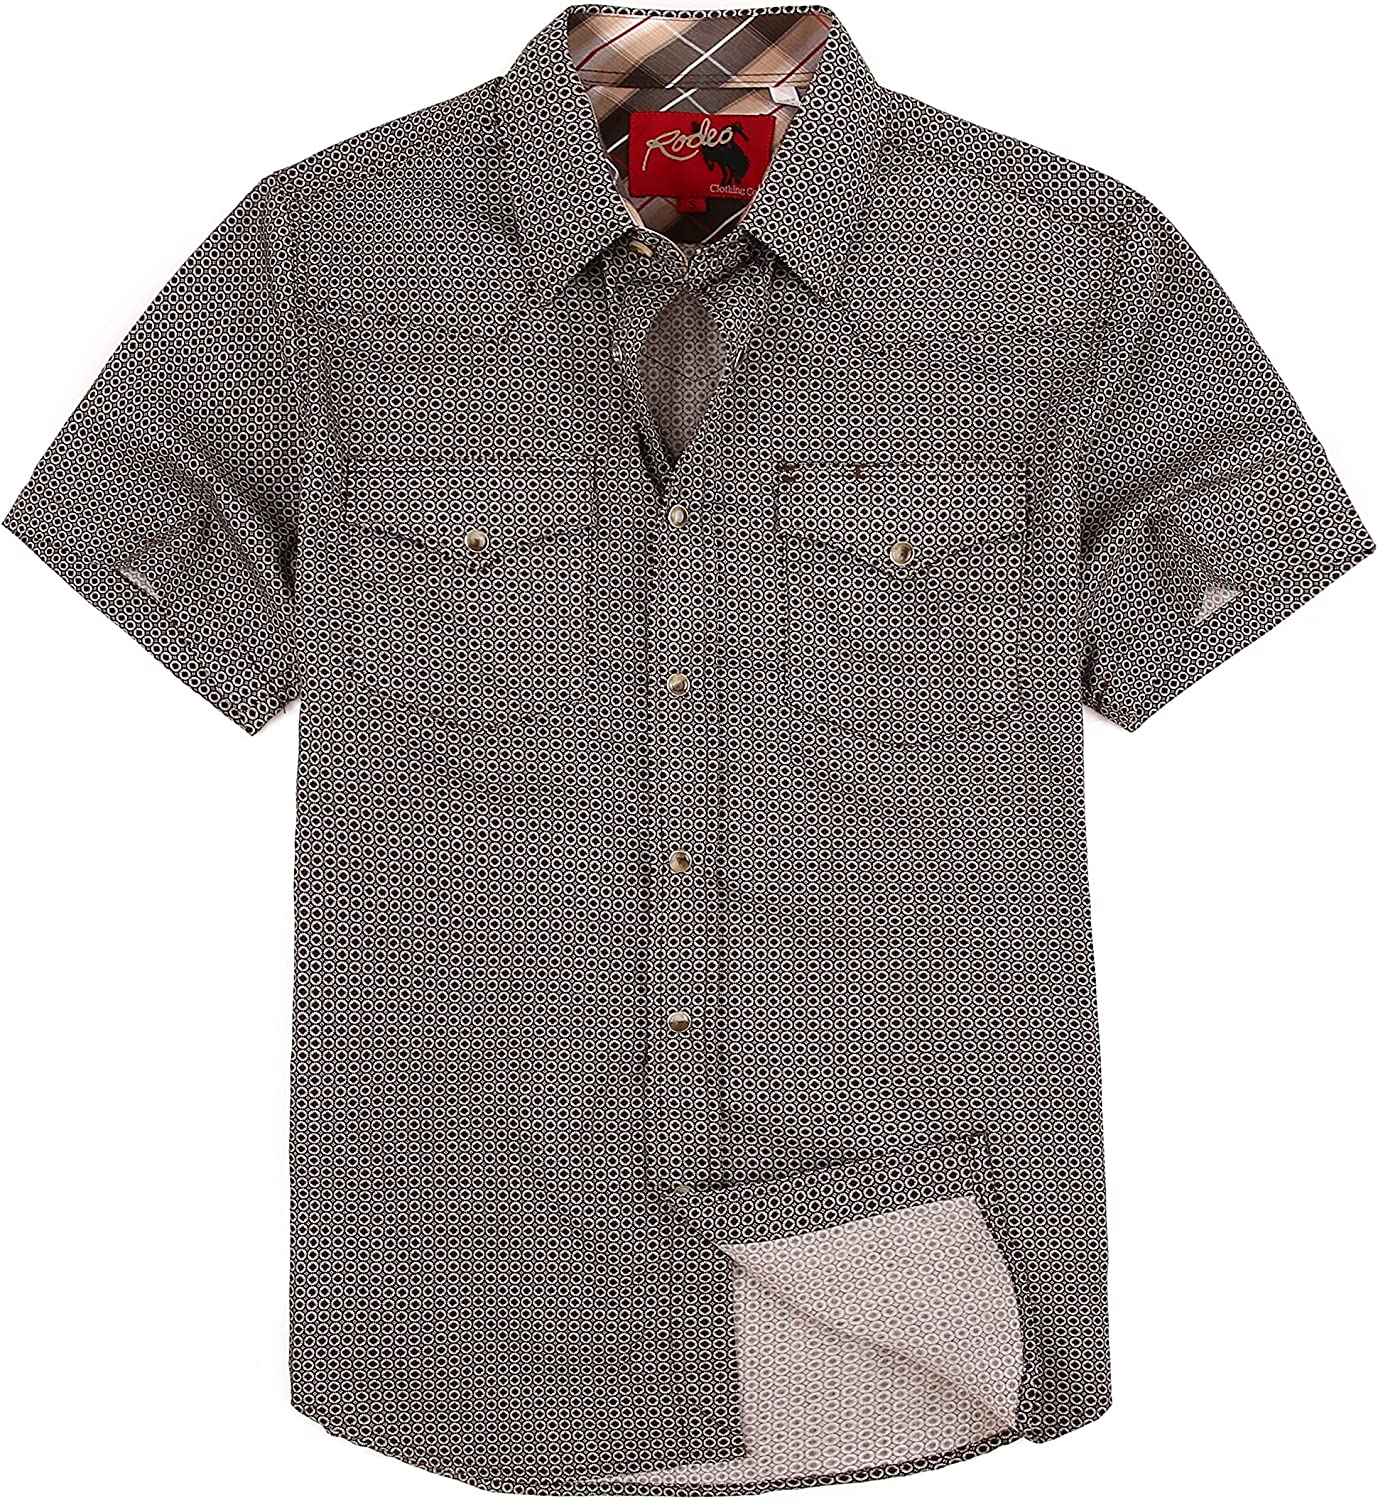 RCCO RODEO CLOTHING COMPANY Mens Casual Button Long Beach Mall Brand new Regul Shirts Down